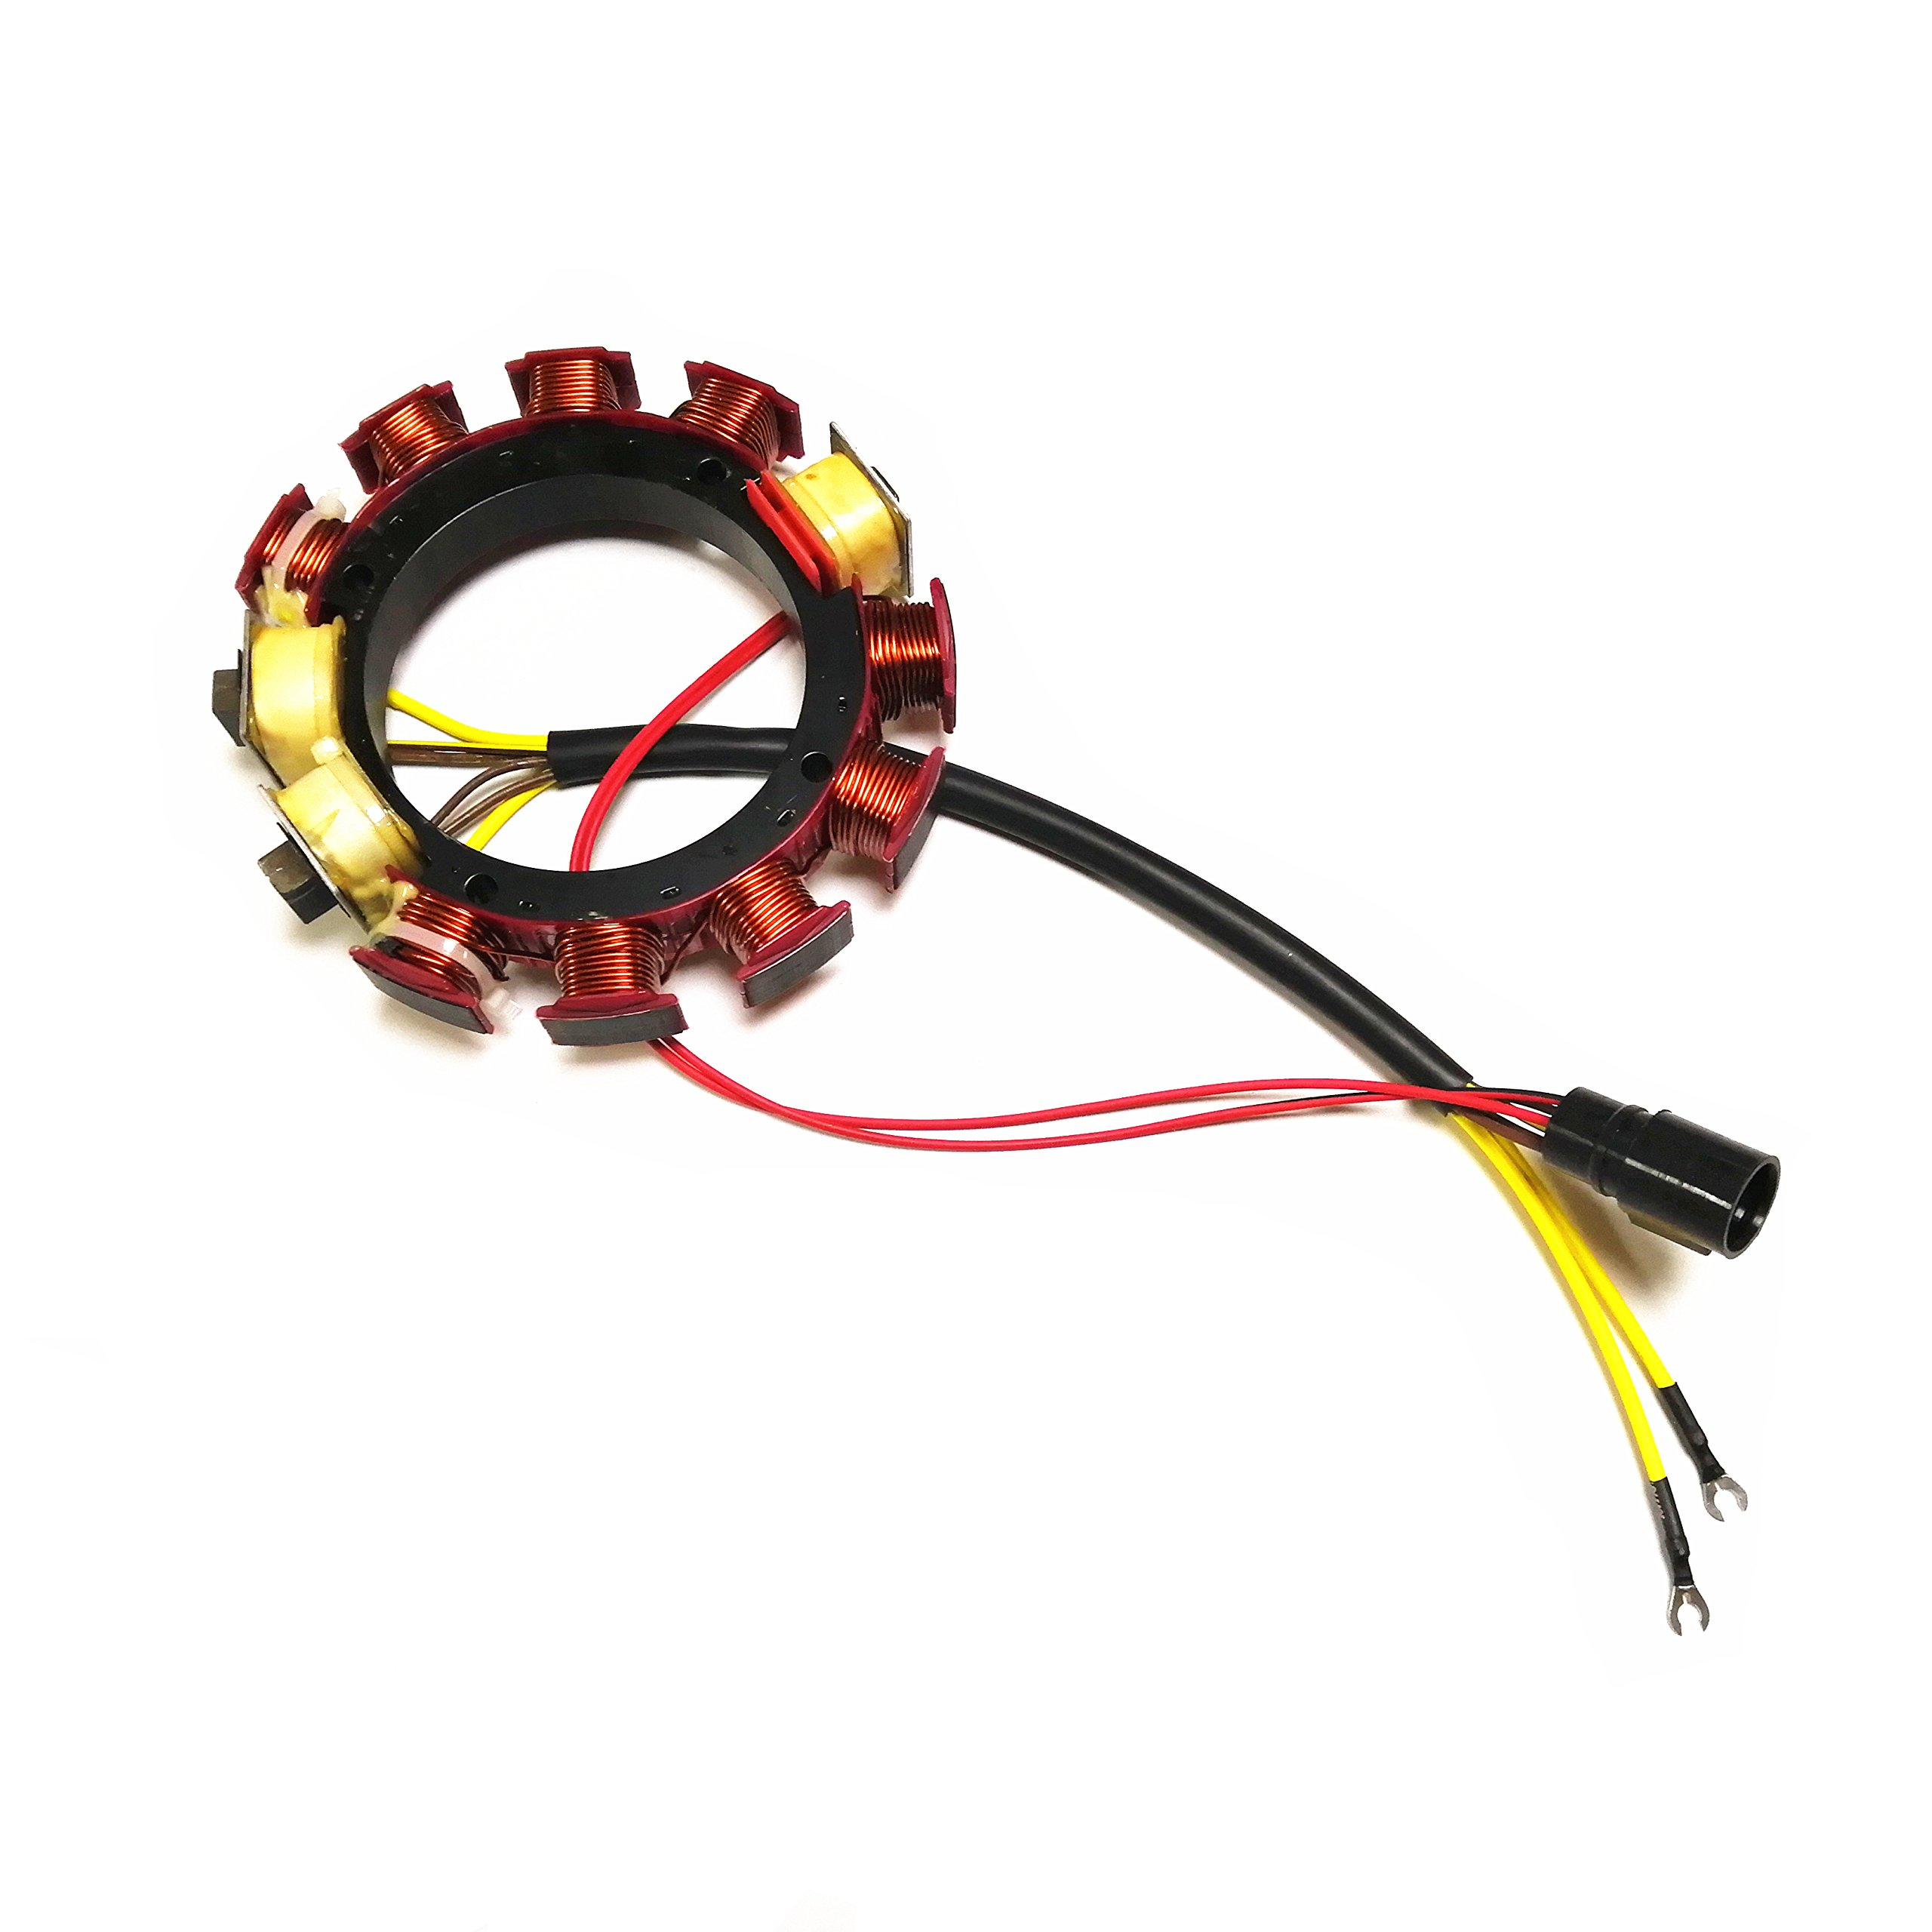 JETUNIT Stator 35Amp 6Cyl For Johnson Evinrude 150-155-175HP 173-4292 584292 583710 763764 by JETUNIT